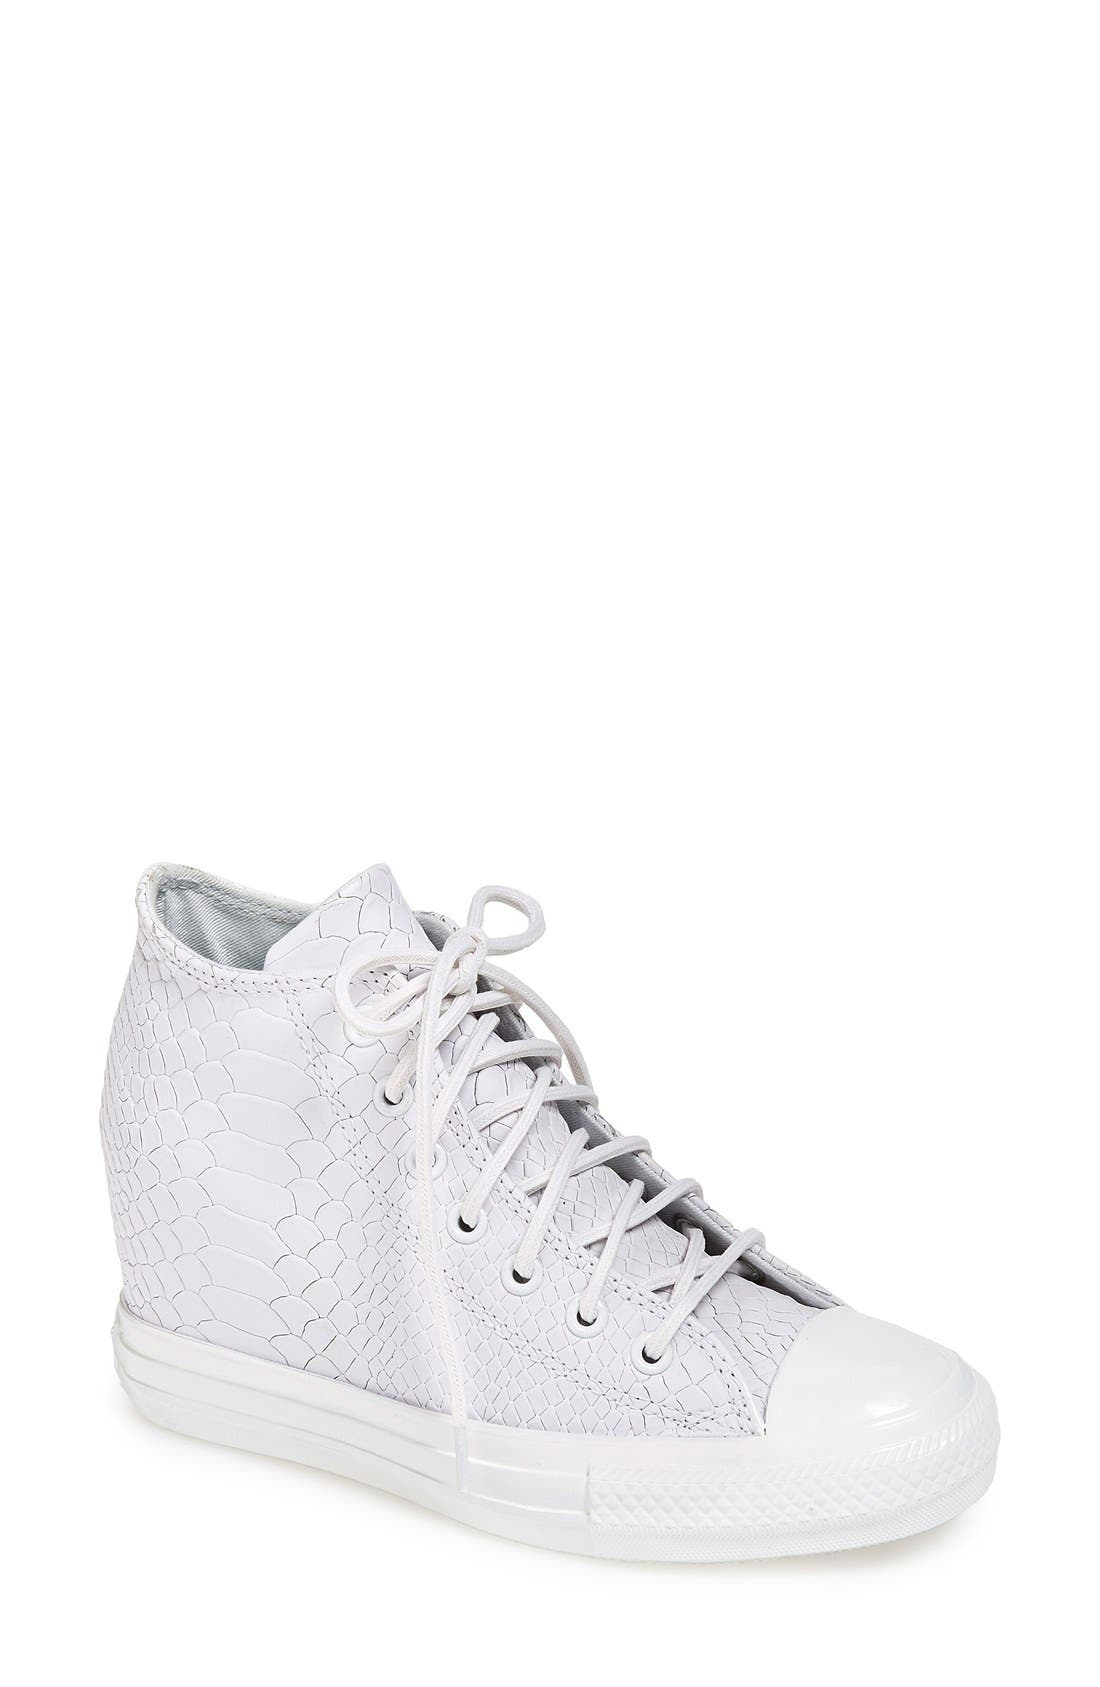 Main Image - Converse Chuck Taylor® All Star® 'Embossed Reptile' Wedge Sneaker (Women)